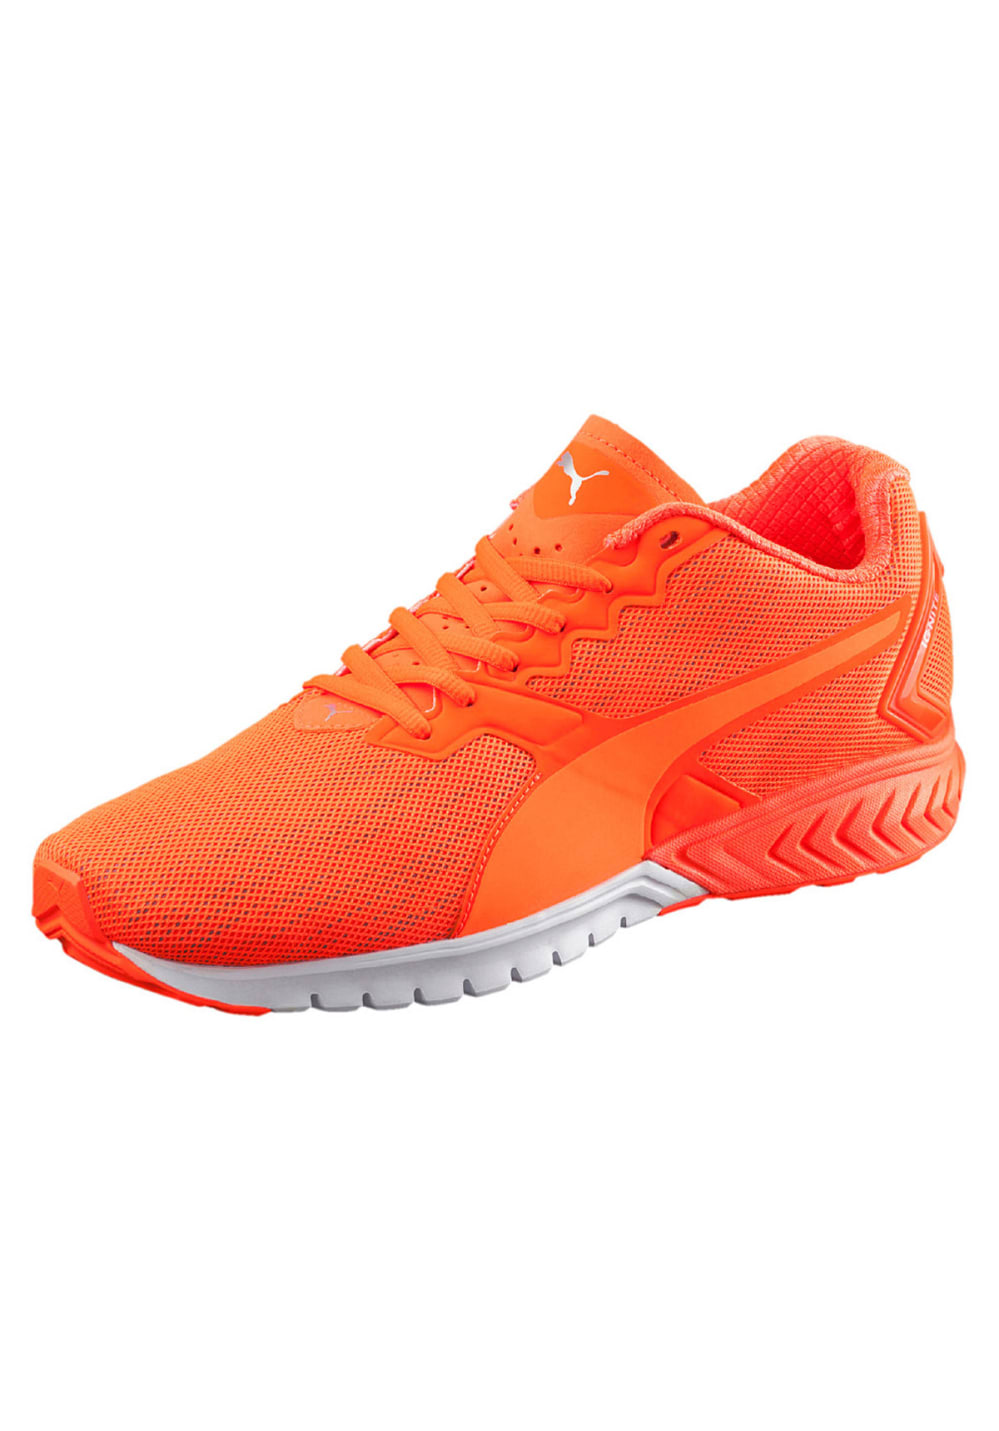 outlet store 258fe f16b3 Puma IGNITE Dual NIGHTCAT - Running shoes for Men - Red